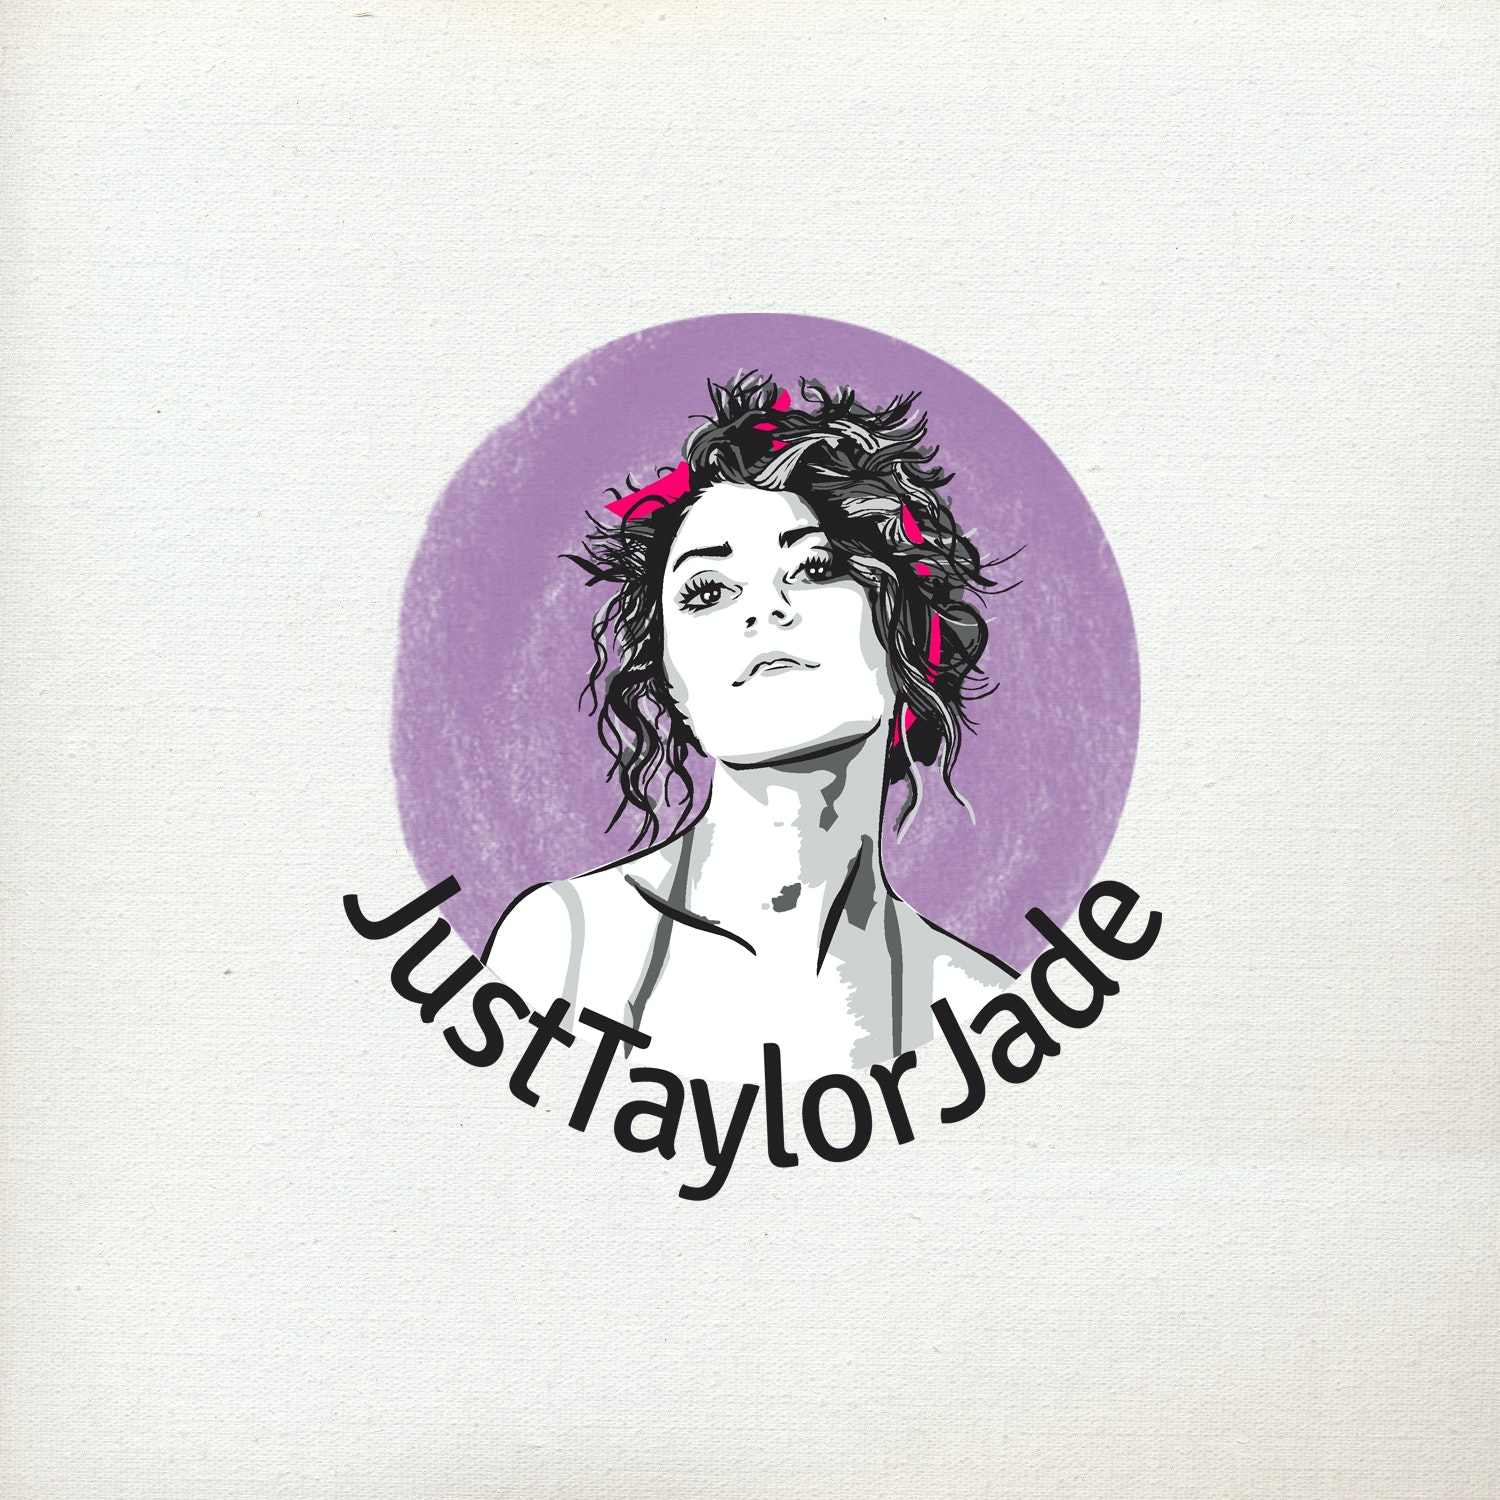 Illustrated logo with lavender]